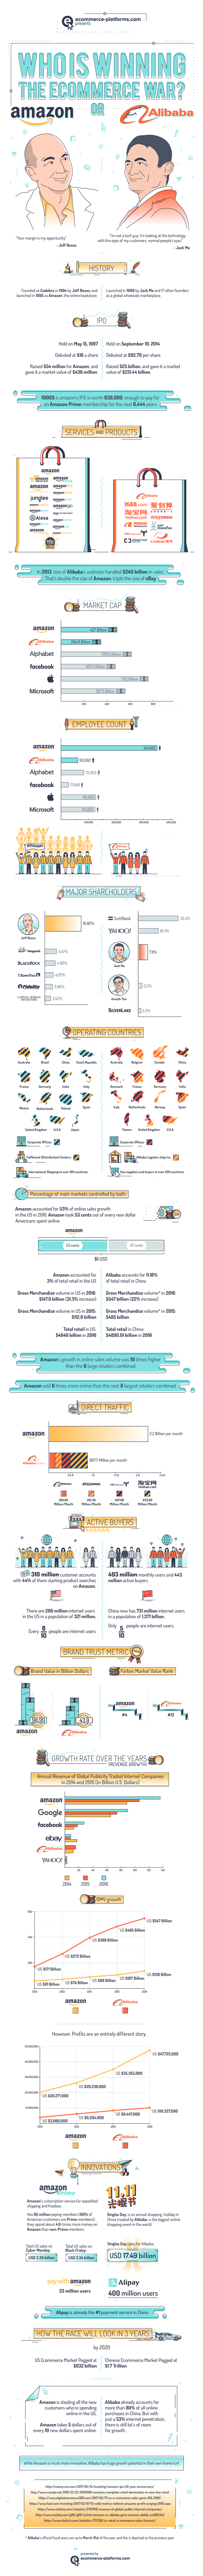 eCommerce: will Alibaba or Amazon dominate_Infographic by eCommerce Platforms for Comms Axis_eCommerce is hugely competitive across the globe with some major players battling it out. This infographic looks at whether Alibaba or Amazon will dominate!